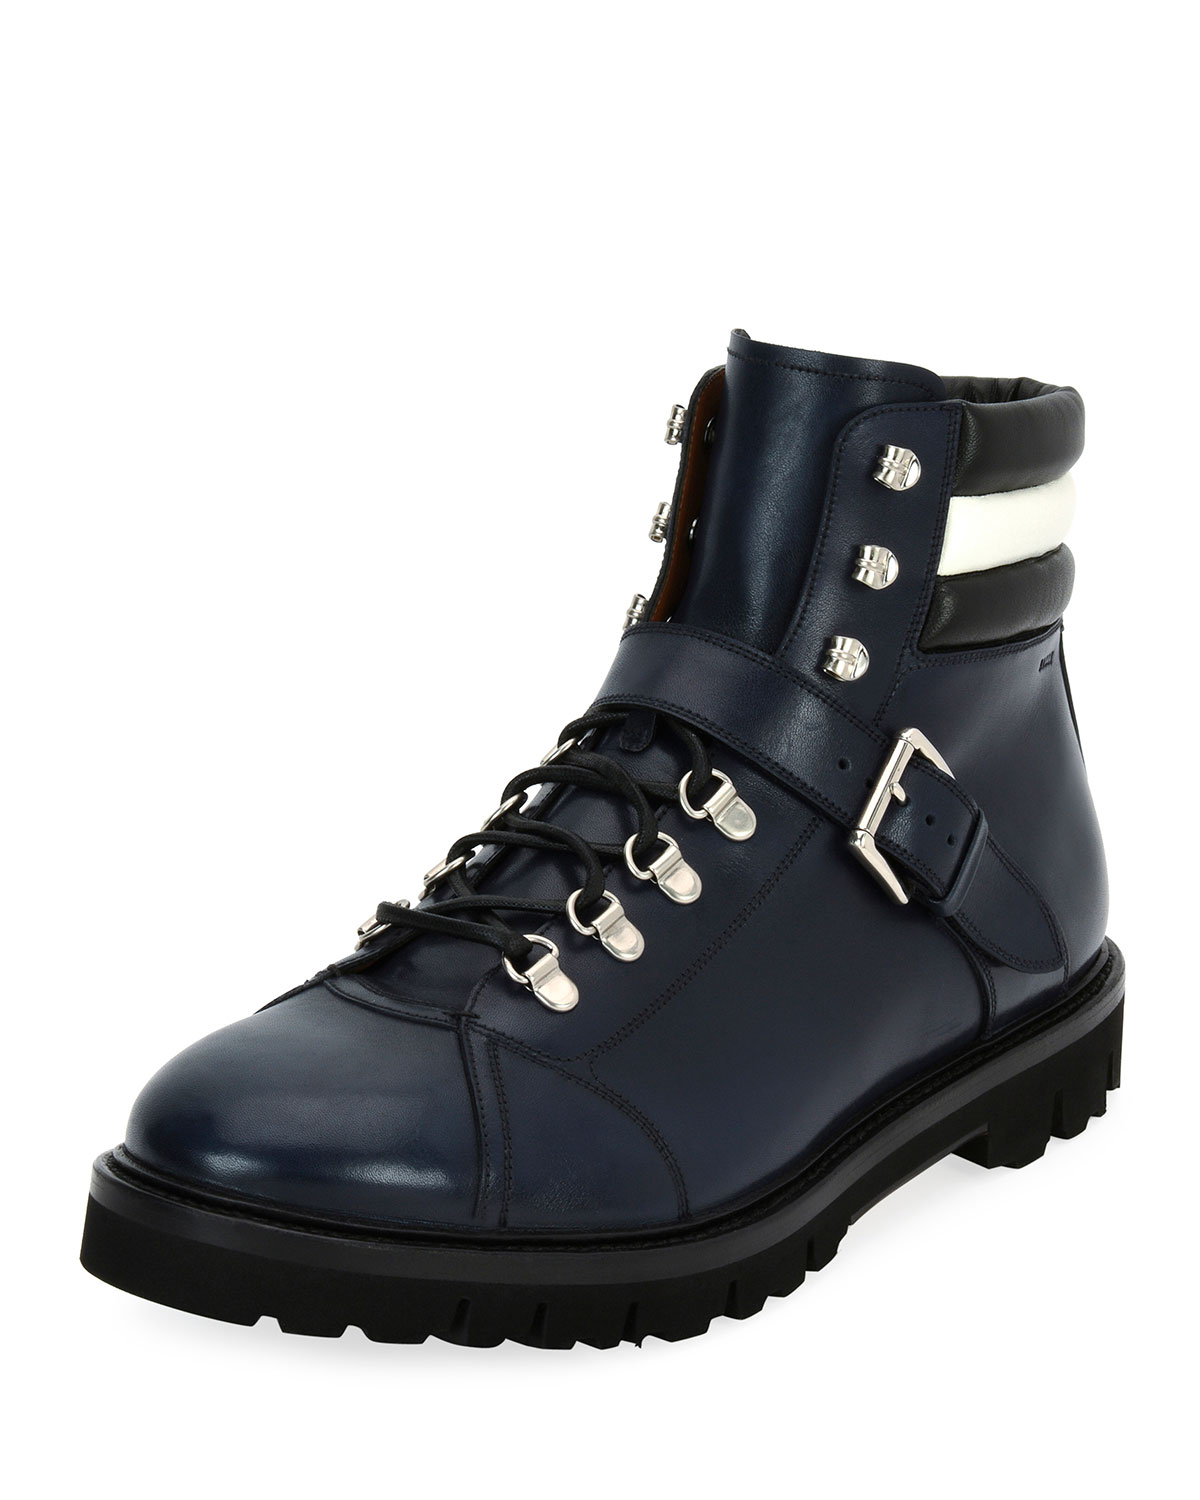 2af6c4c23f22 Bally Champions Leather Hiking Boot